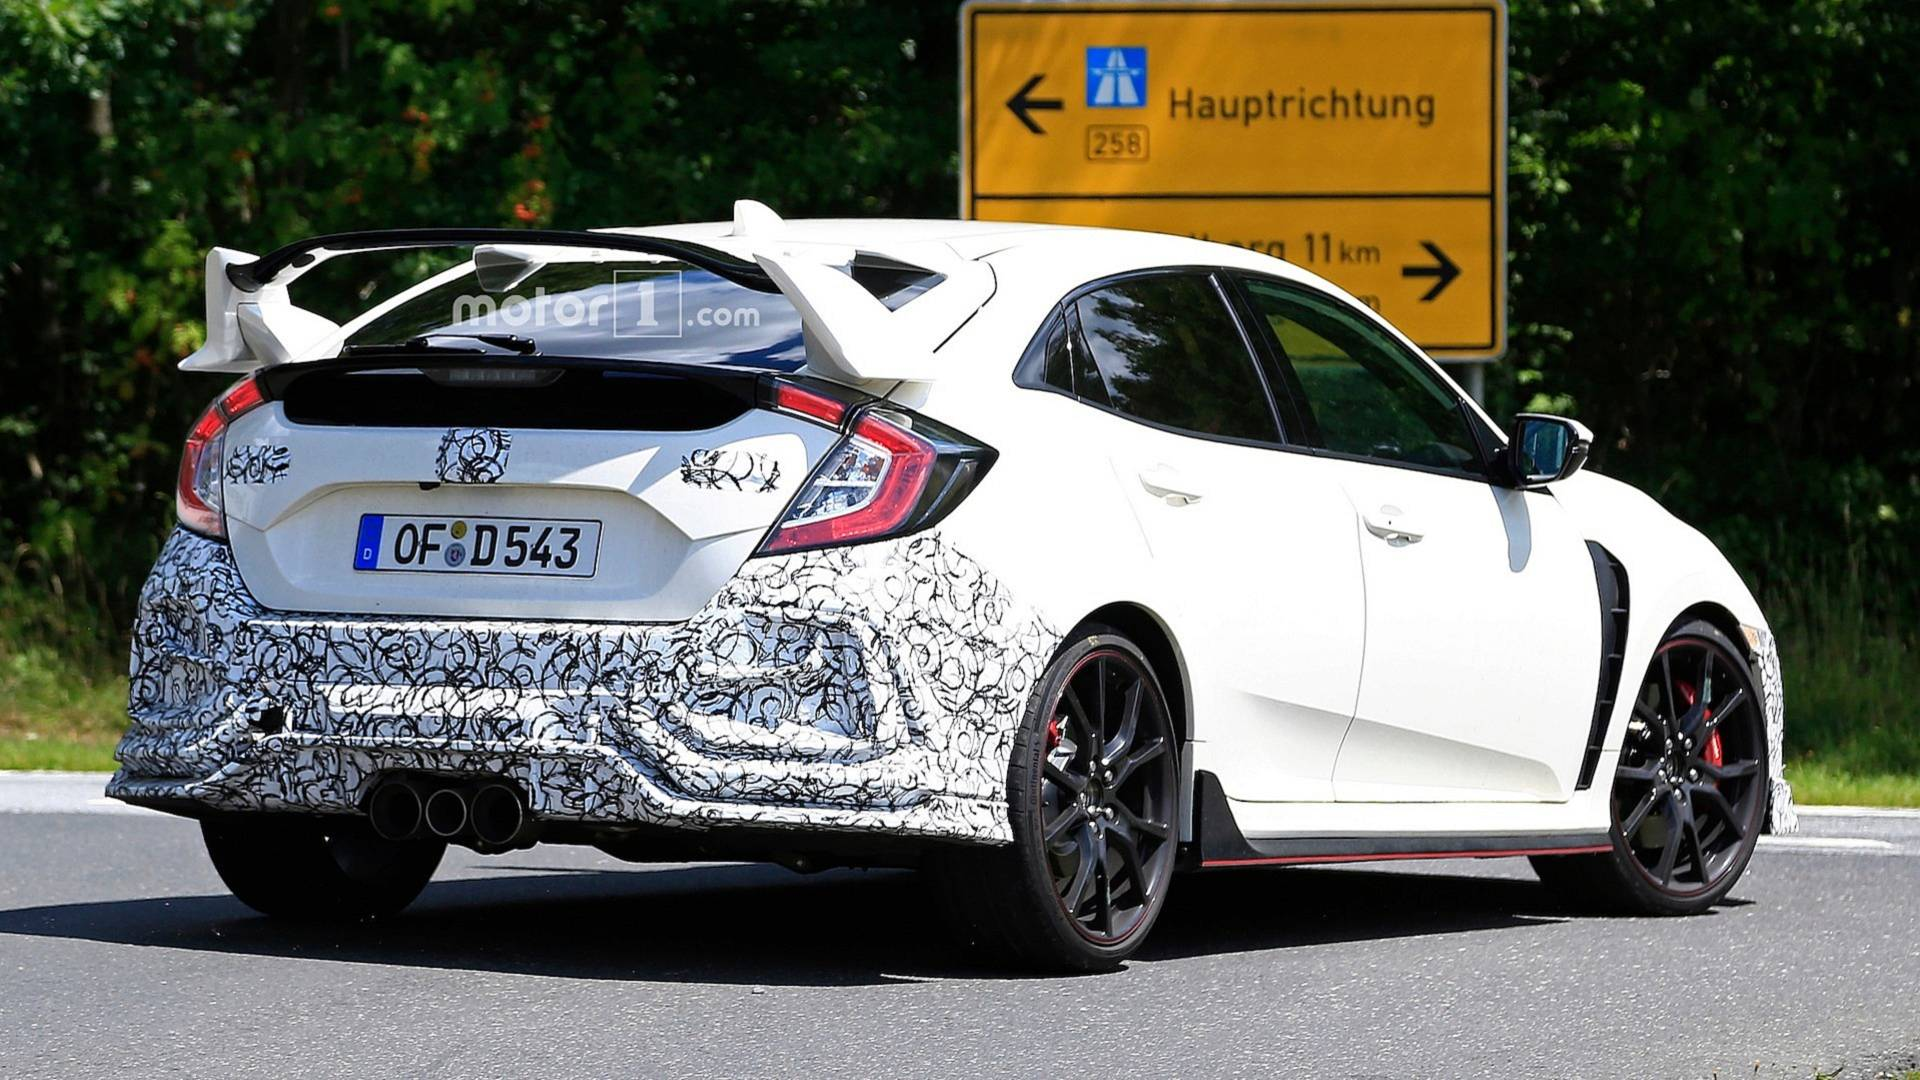 honda civic 2019 type r spy shots (2)